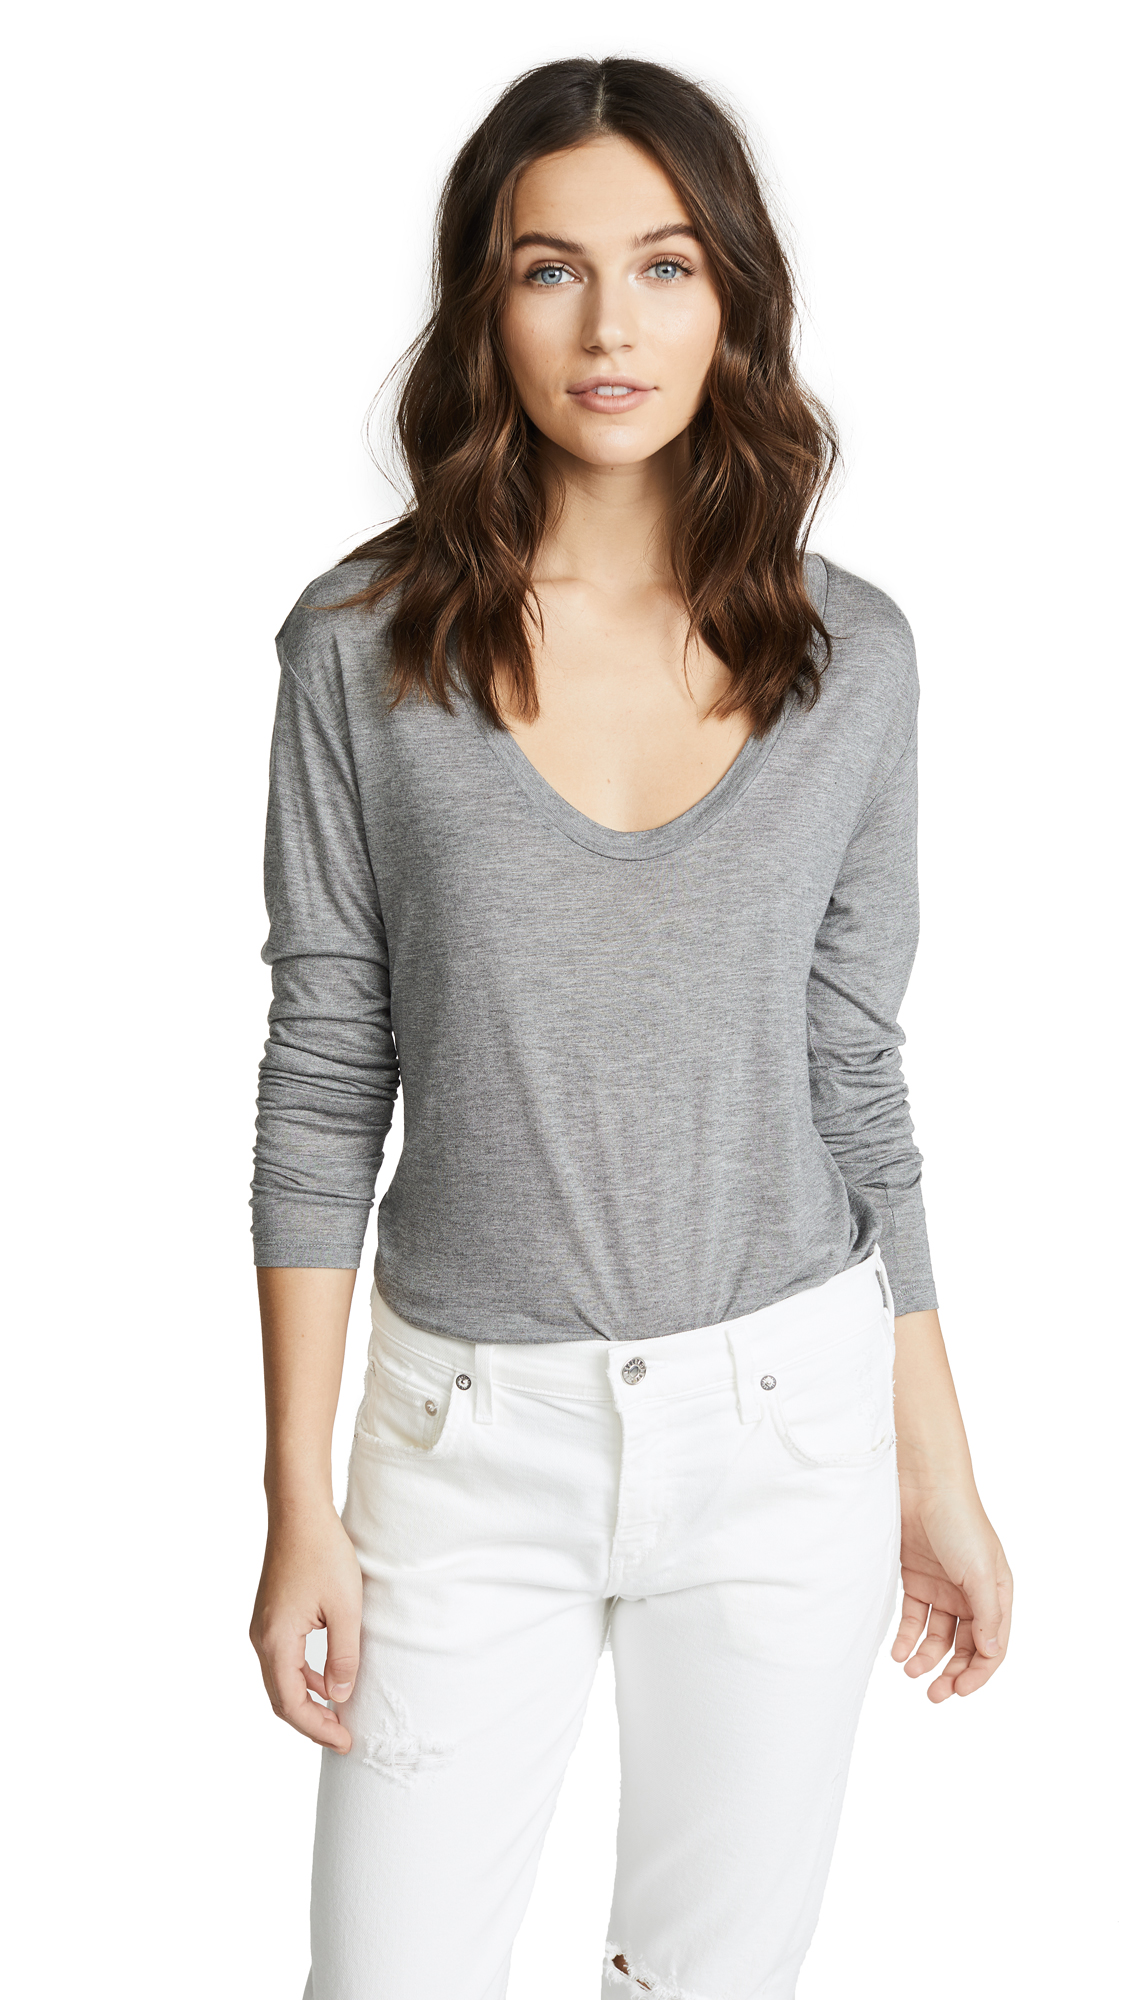 LAGENCE Long Sleeve Tee - Heather Grey